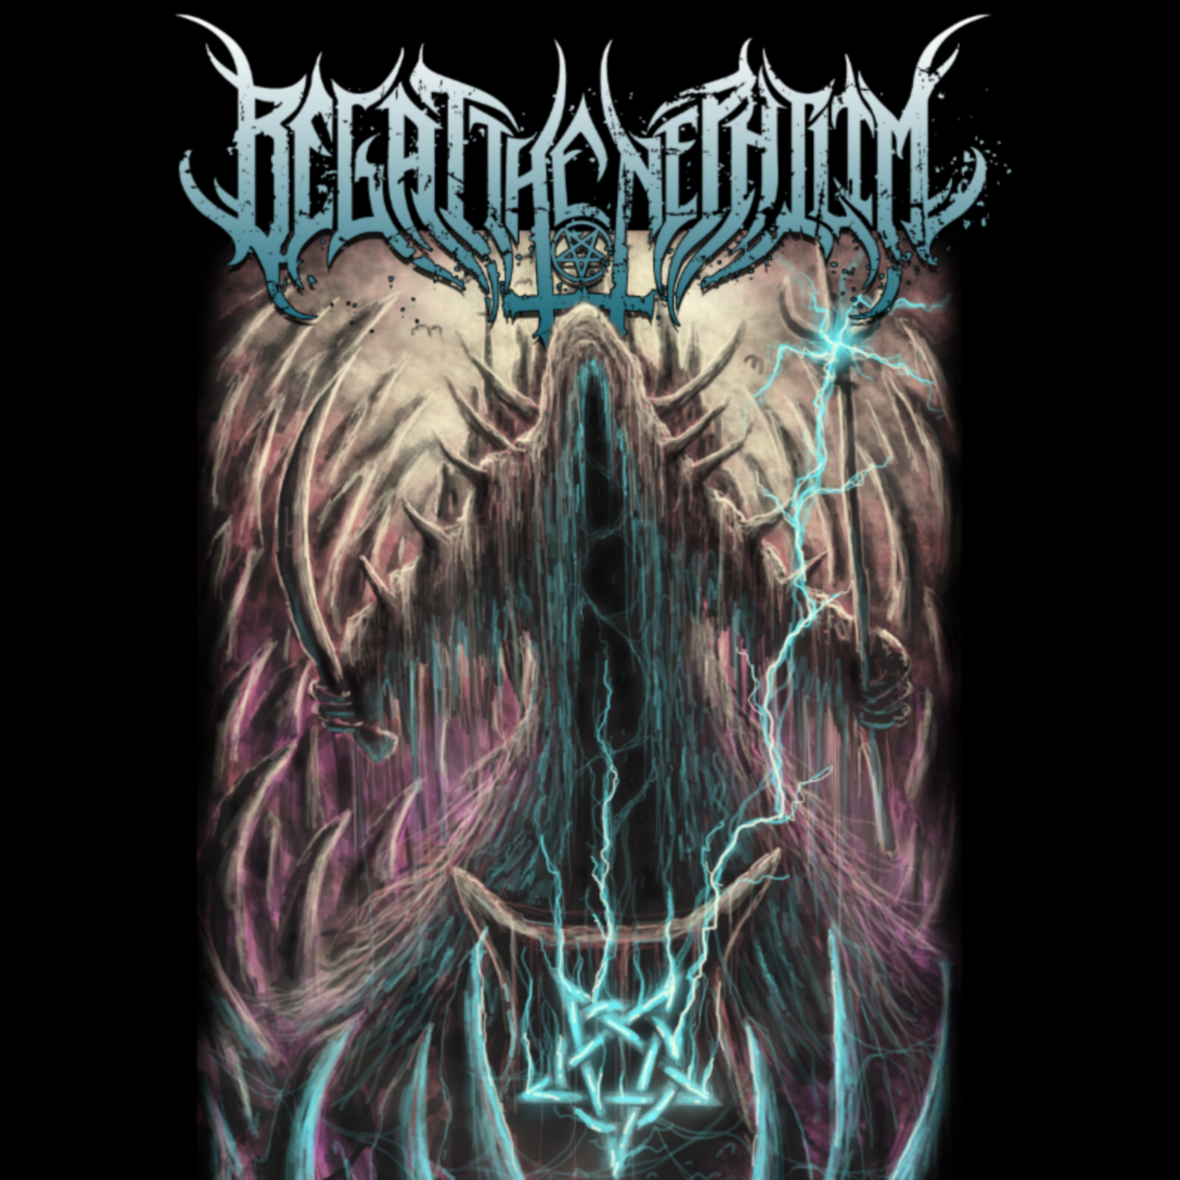 Begat The Nephilim - Paupers Grave 2048x2048